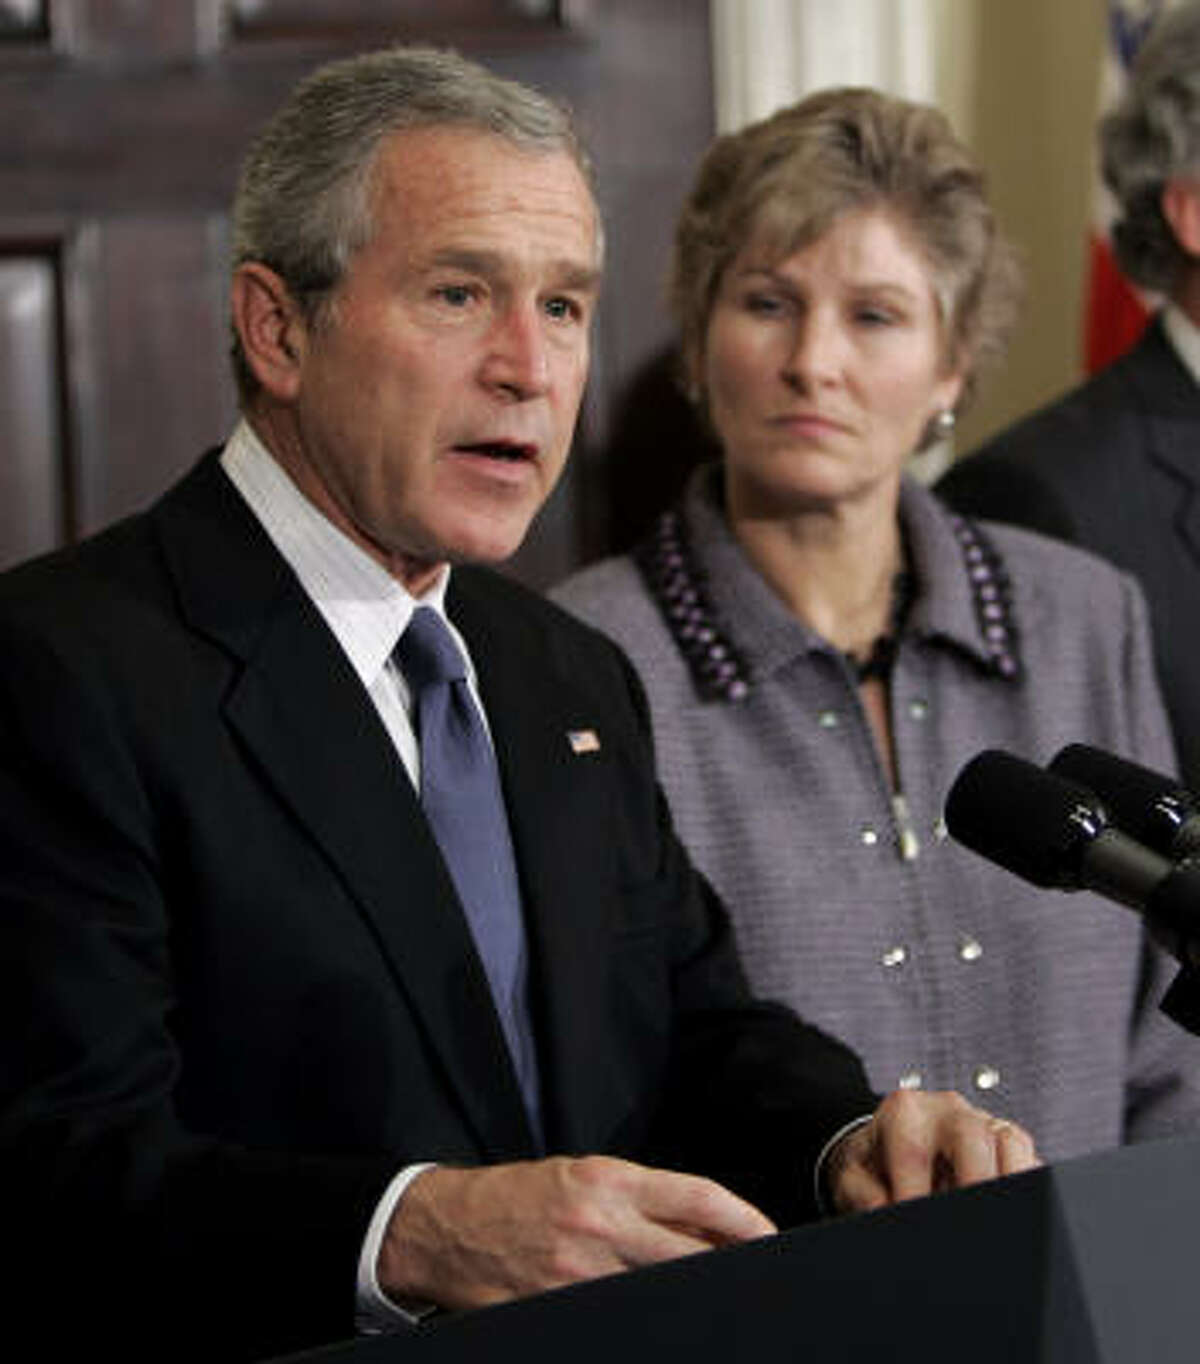 Undersecretary of State for Public Diplomacy Karen Hughes, right, looks on as President Bush makes a statement on south Asia earthquake relief efforts on Nov. 9, 2005.